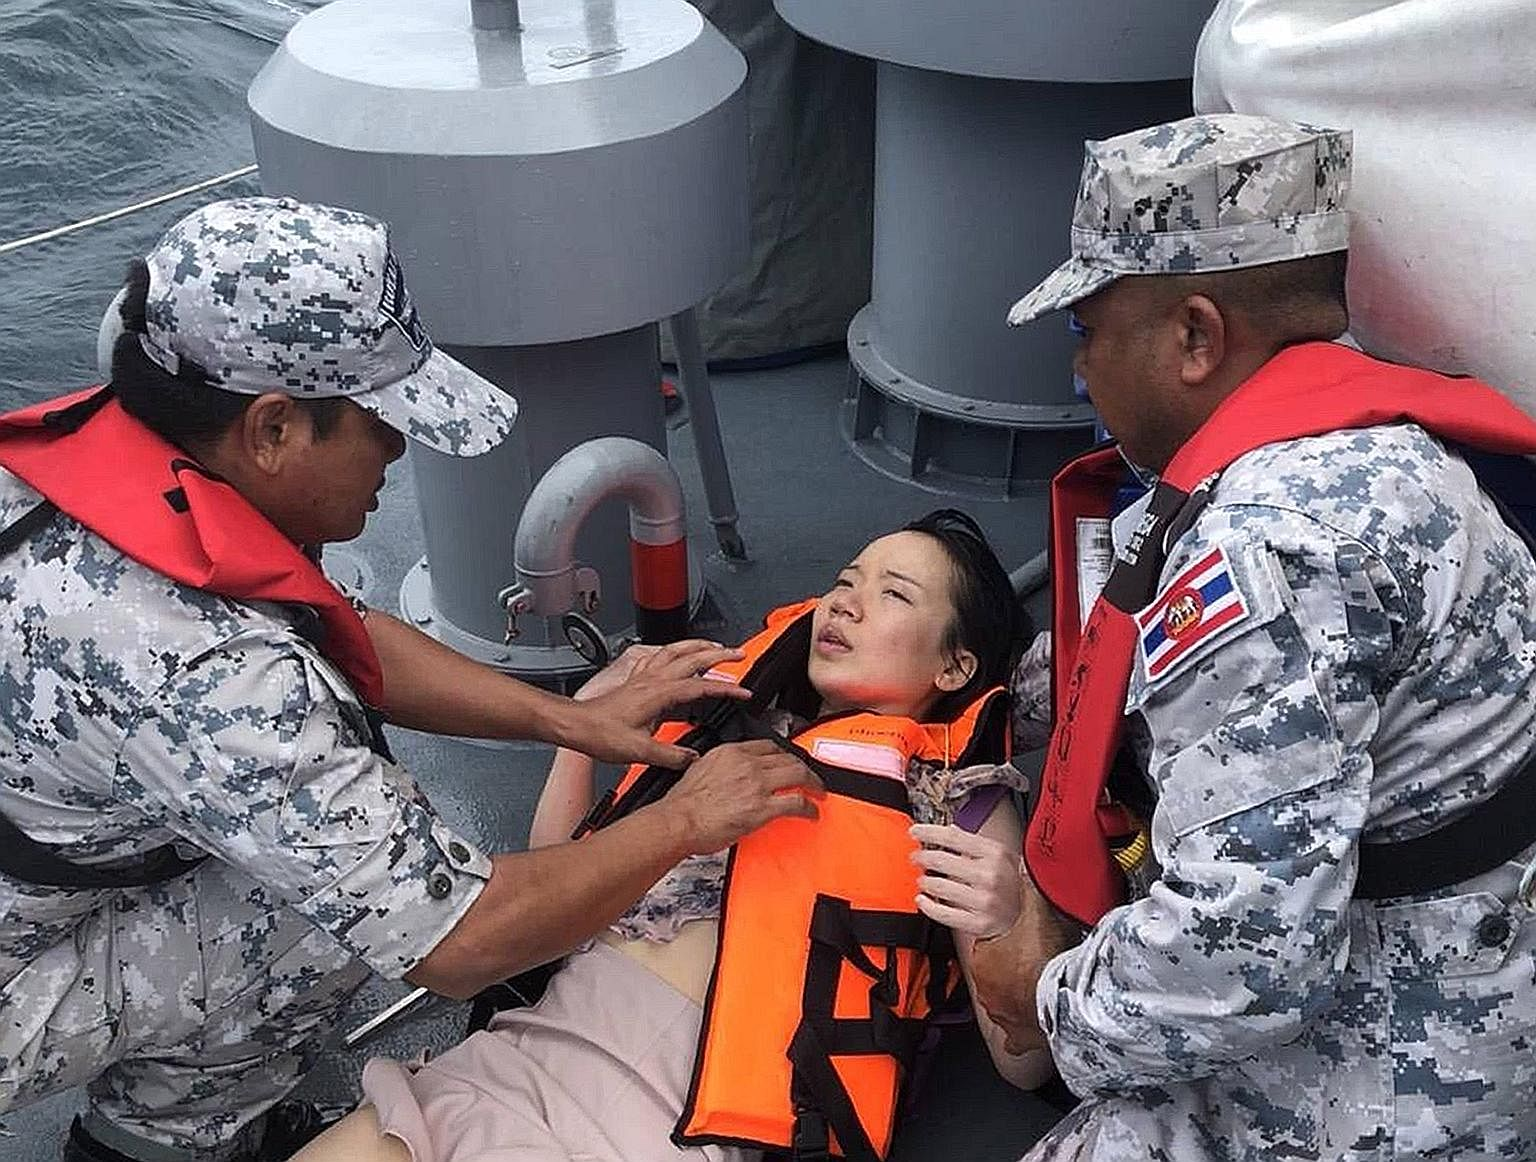 One day after bad weather and rough seas sank a boat carrying 105 people off the Thai resort island of Phuket, rescue workers began the grim task of collecting bodies instead of survivors such as this woman from the water. Thirty-three bodies were pu